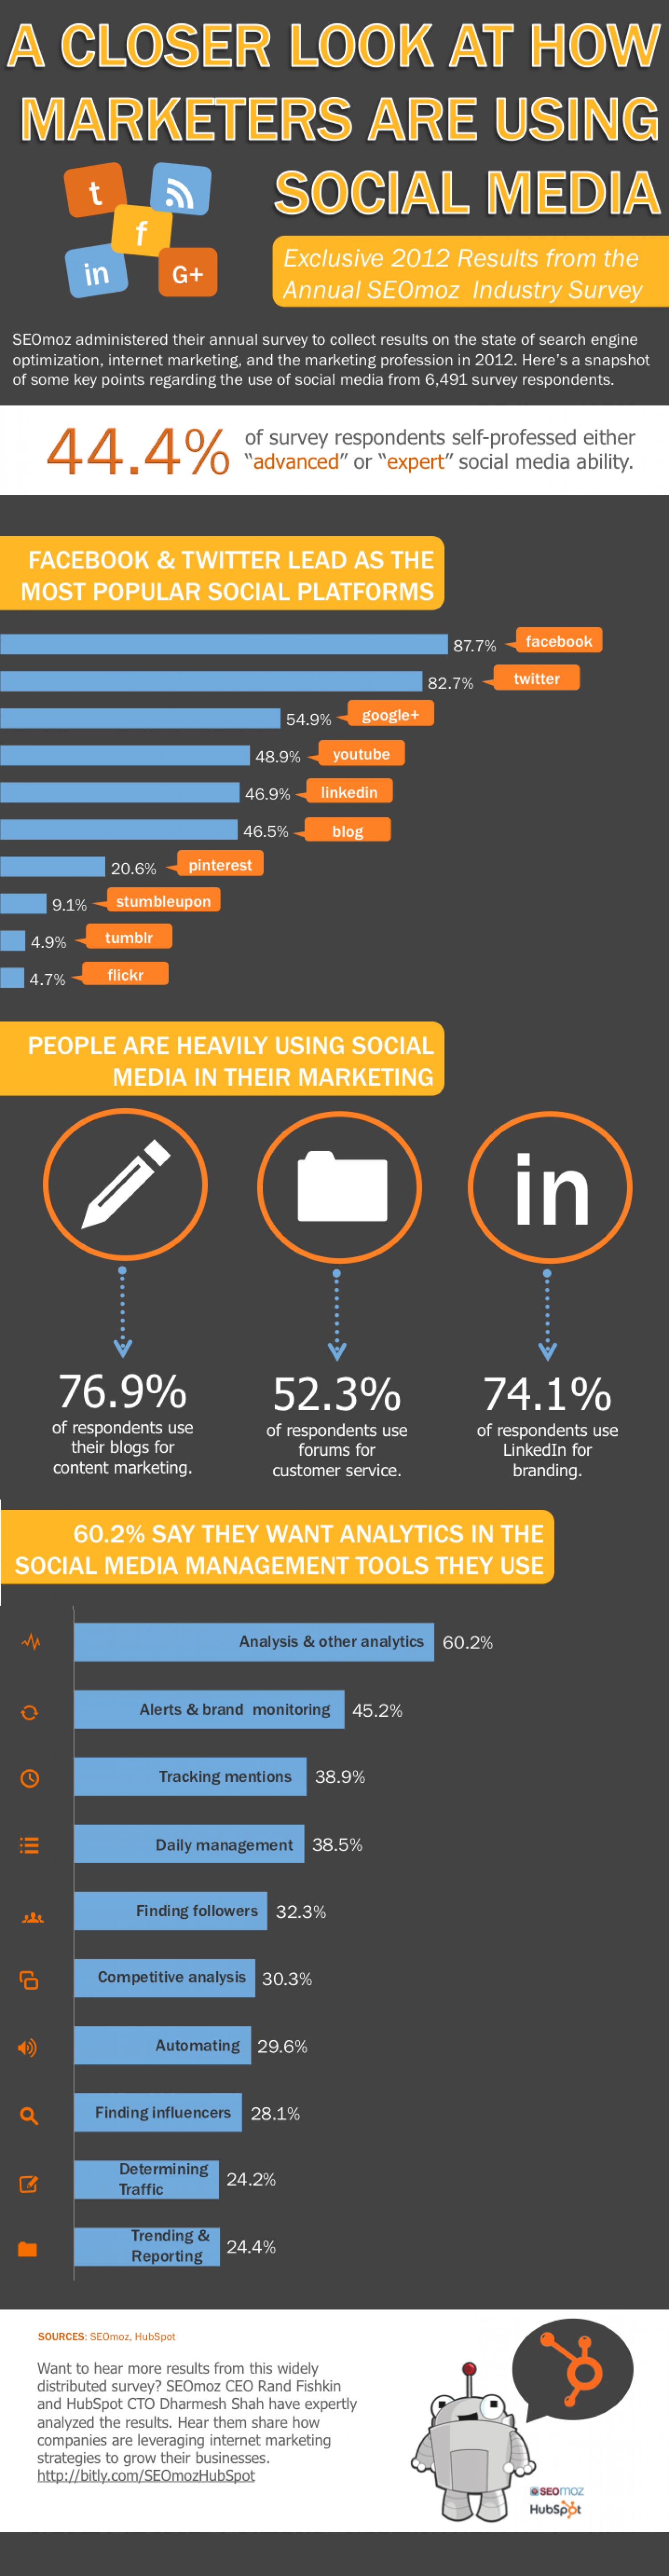 Marketers Are Using Social Media Infographic